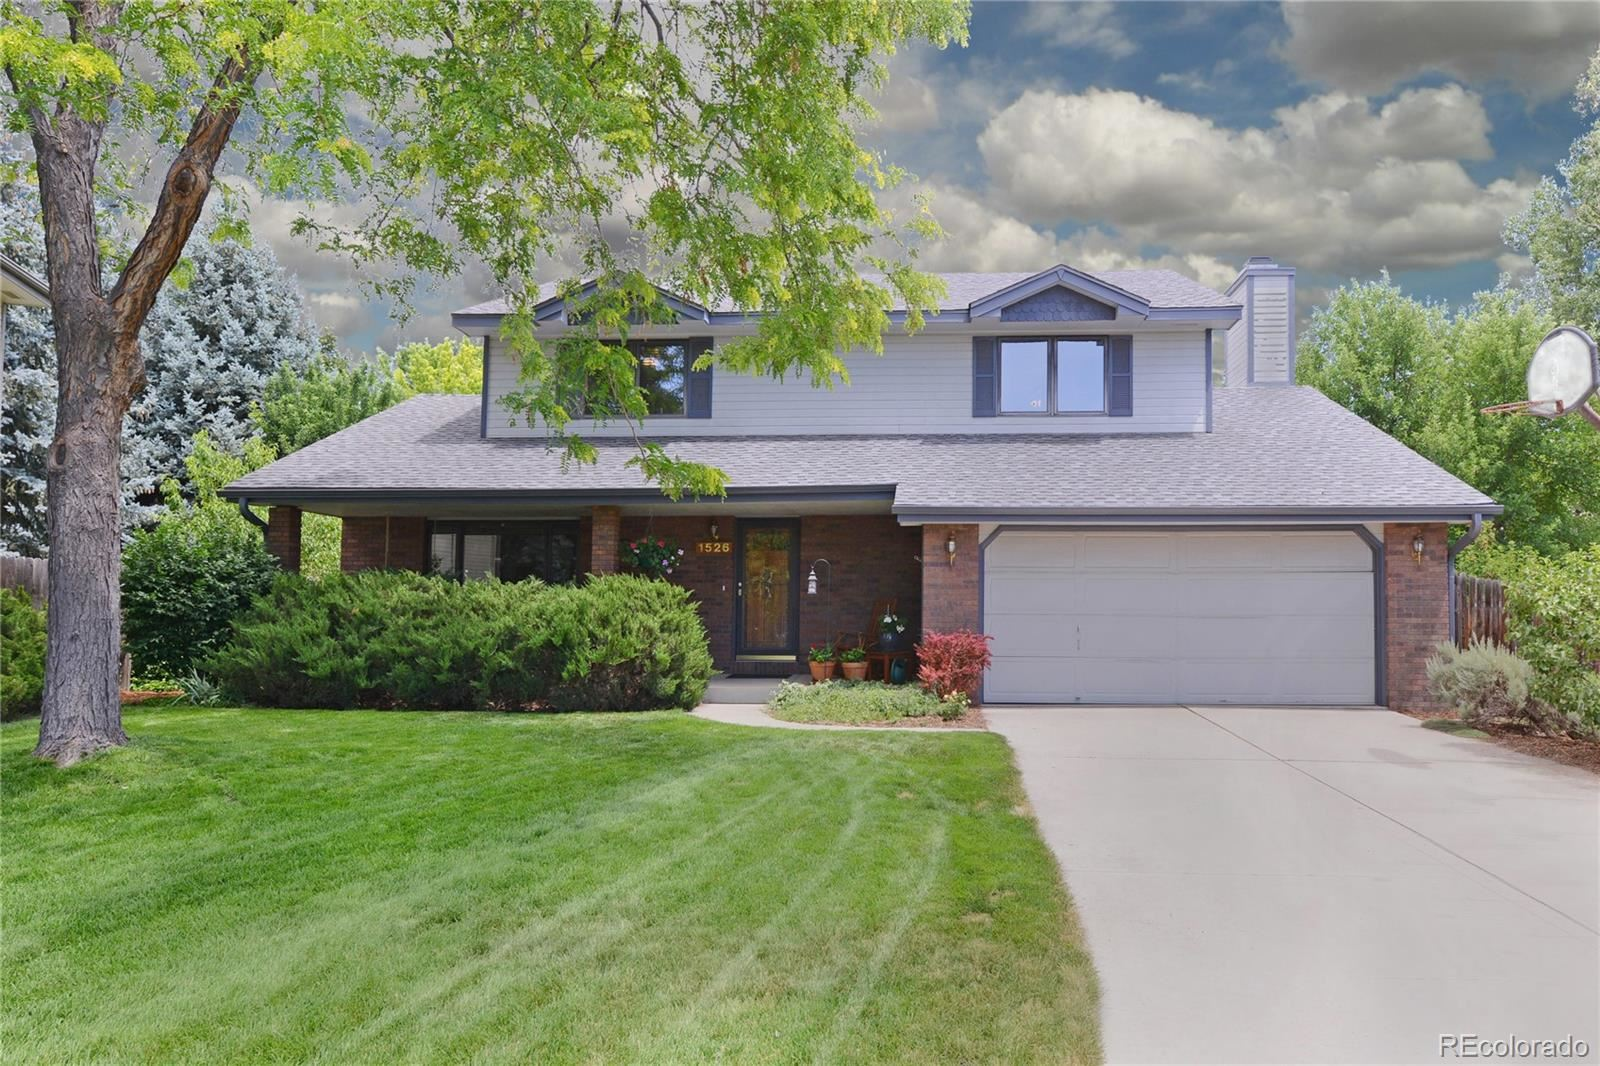 1526 42nd Avenue Court, Greeley, CO 80634 - #: 4205699